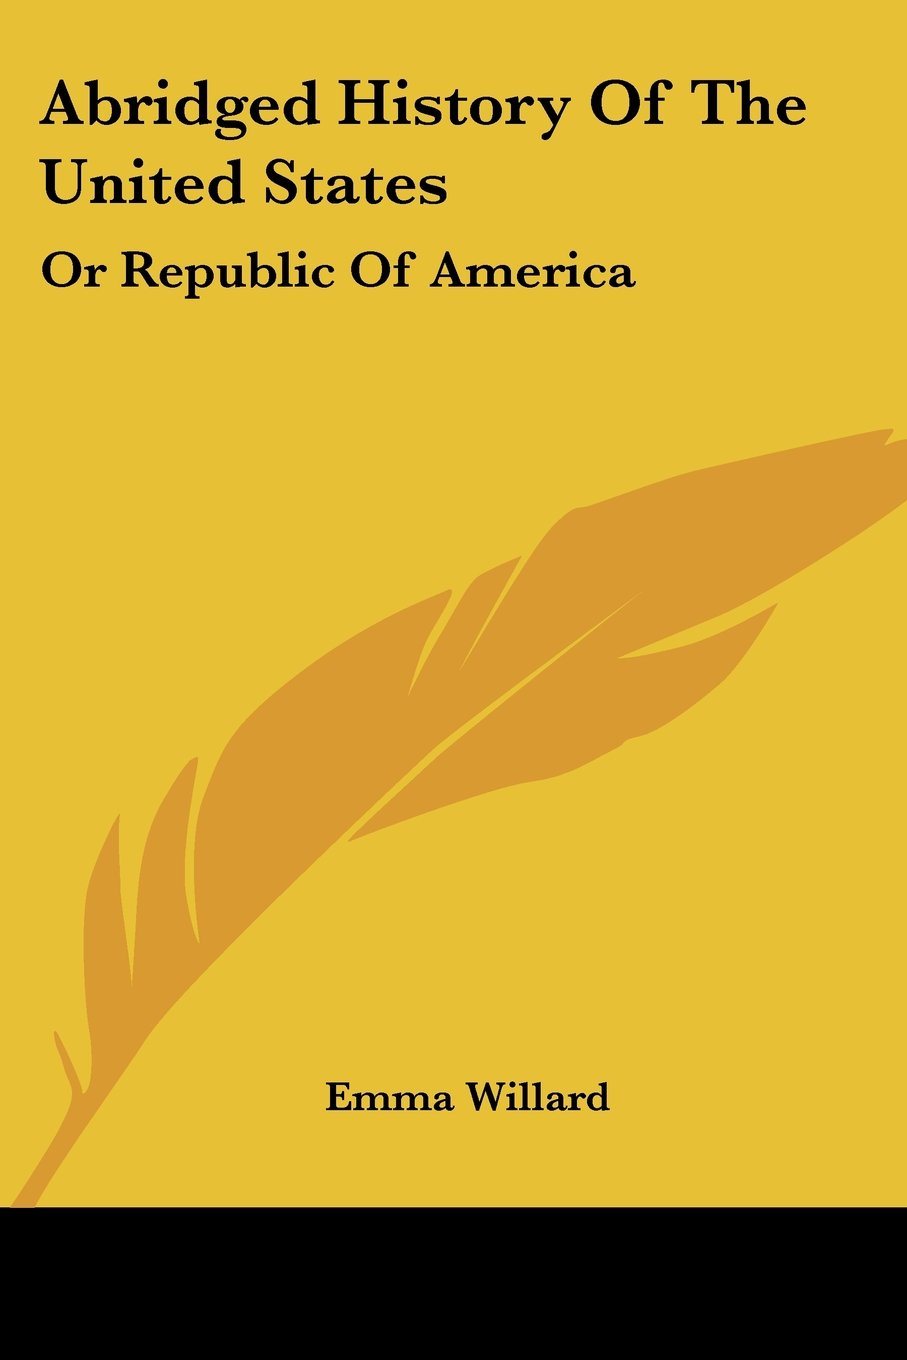 Abridged History Of The United States: Or Republic Of America PDF